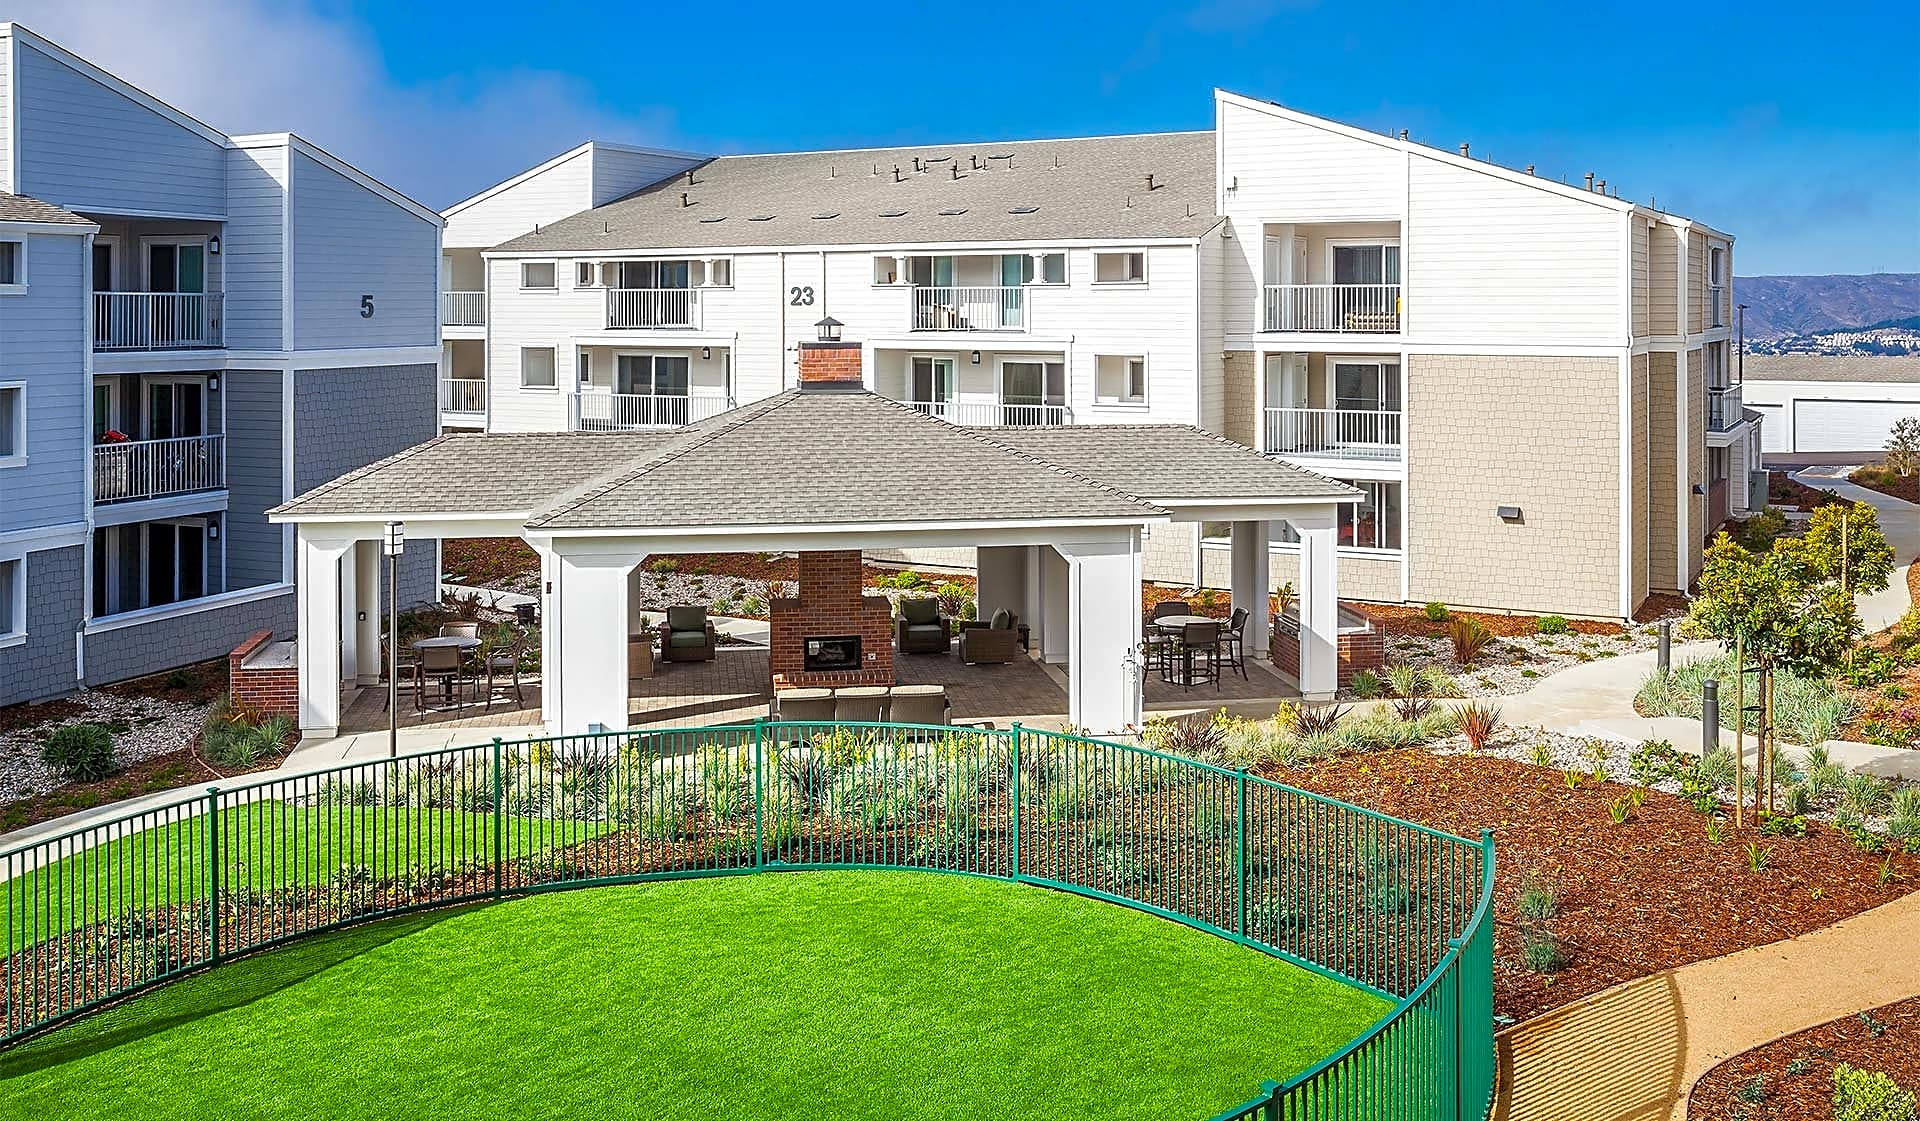 Our pet-friendly community offers a grassy park for your dog to play